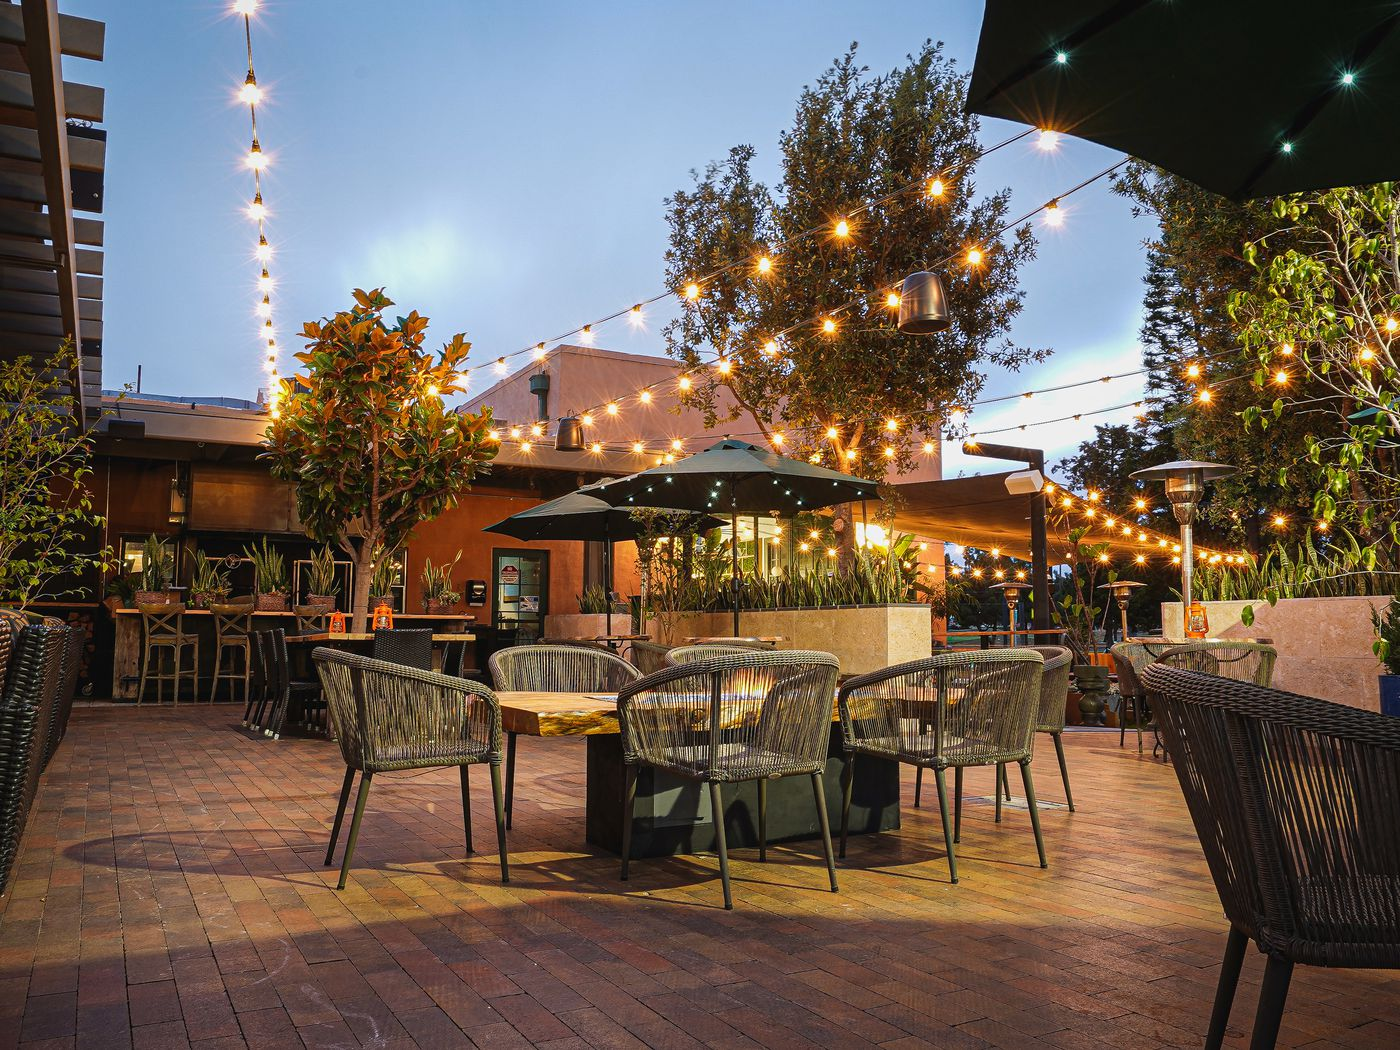 Mostly Outdoor Restaurant And Bar Arrives In Liberty Station Eater San Diego